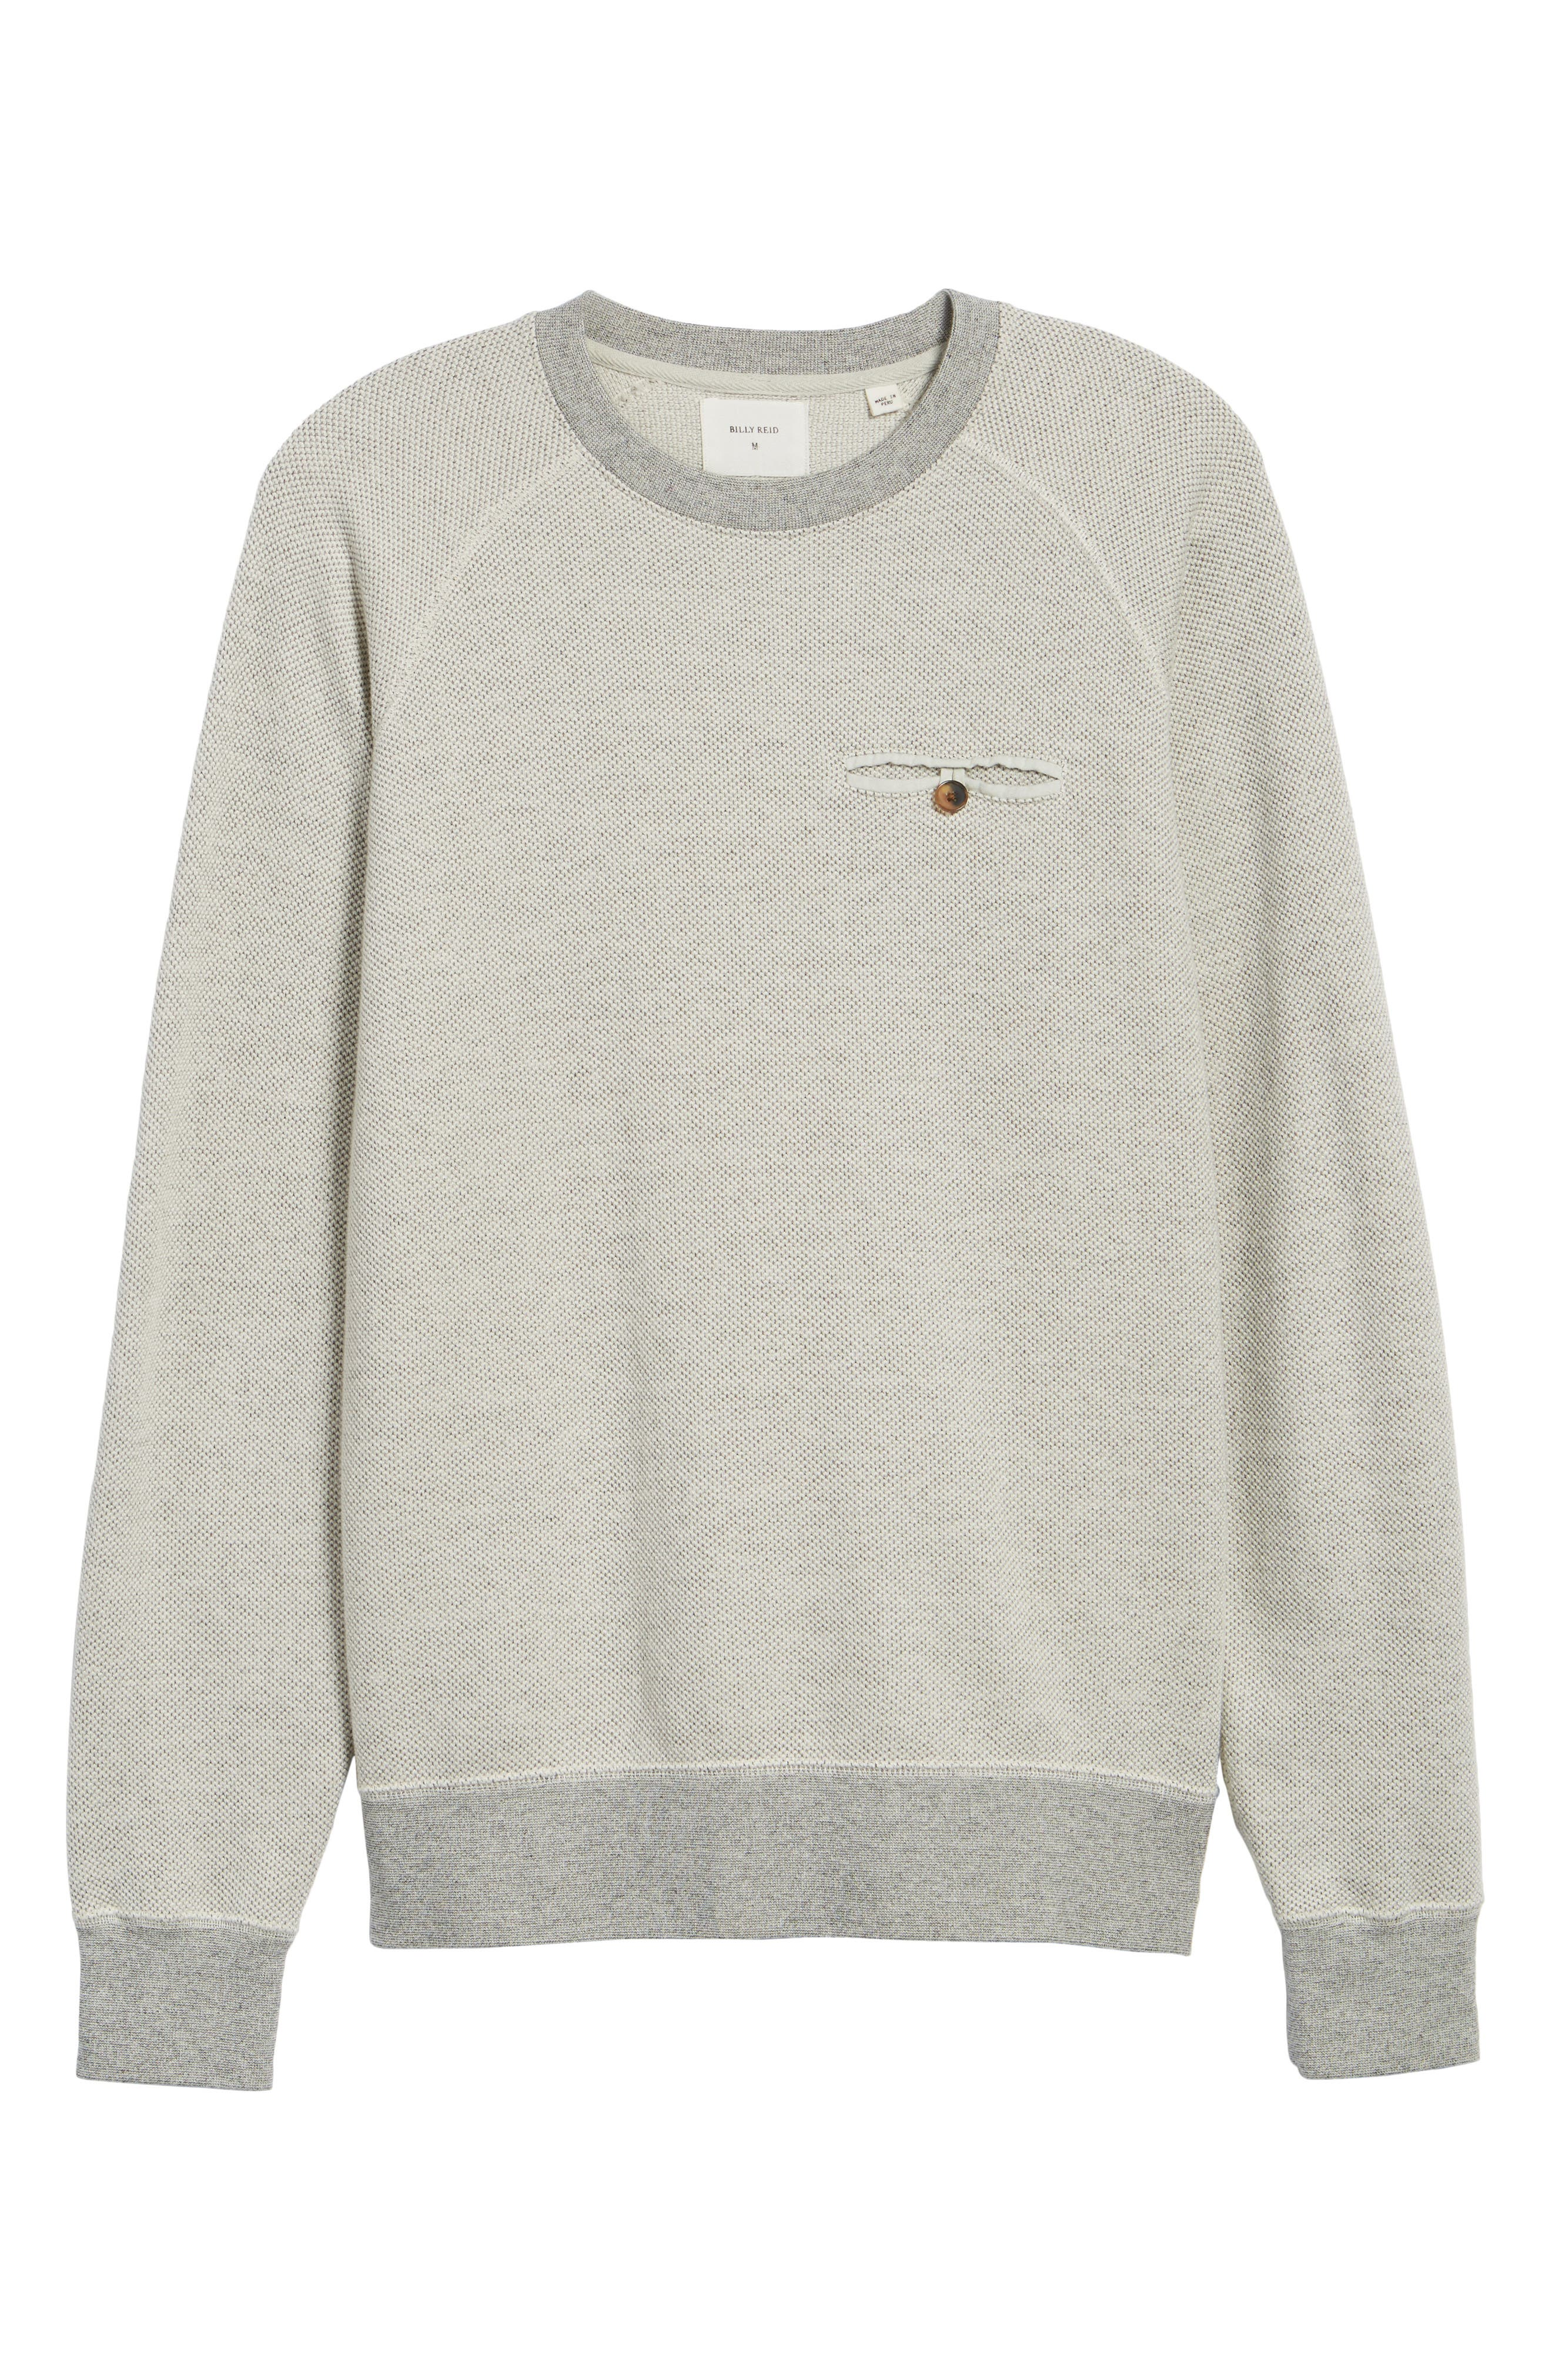 Tommy Pullover Sweatshirt,                             Alternate thumbnail 6, color,                             032